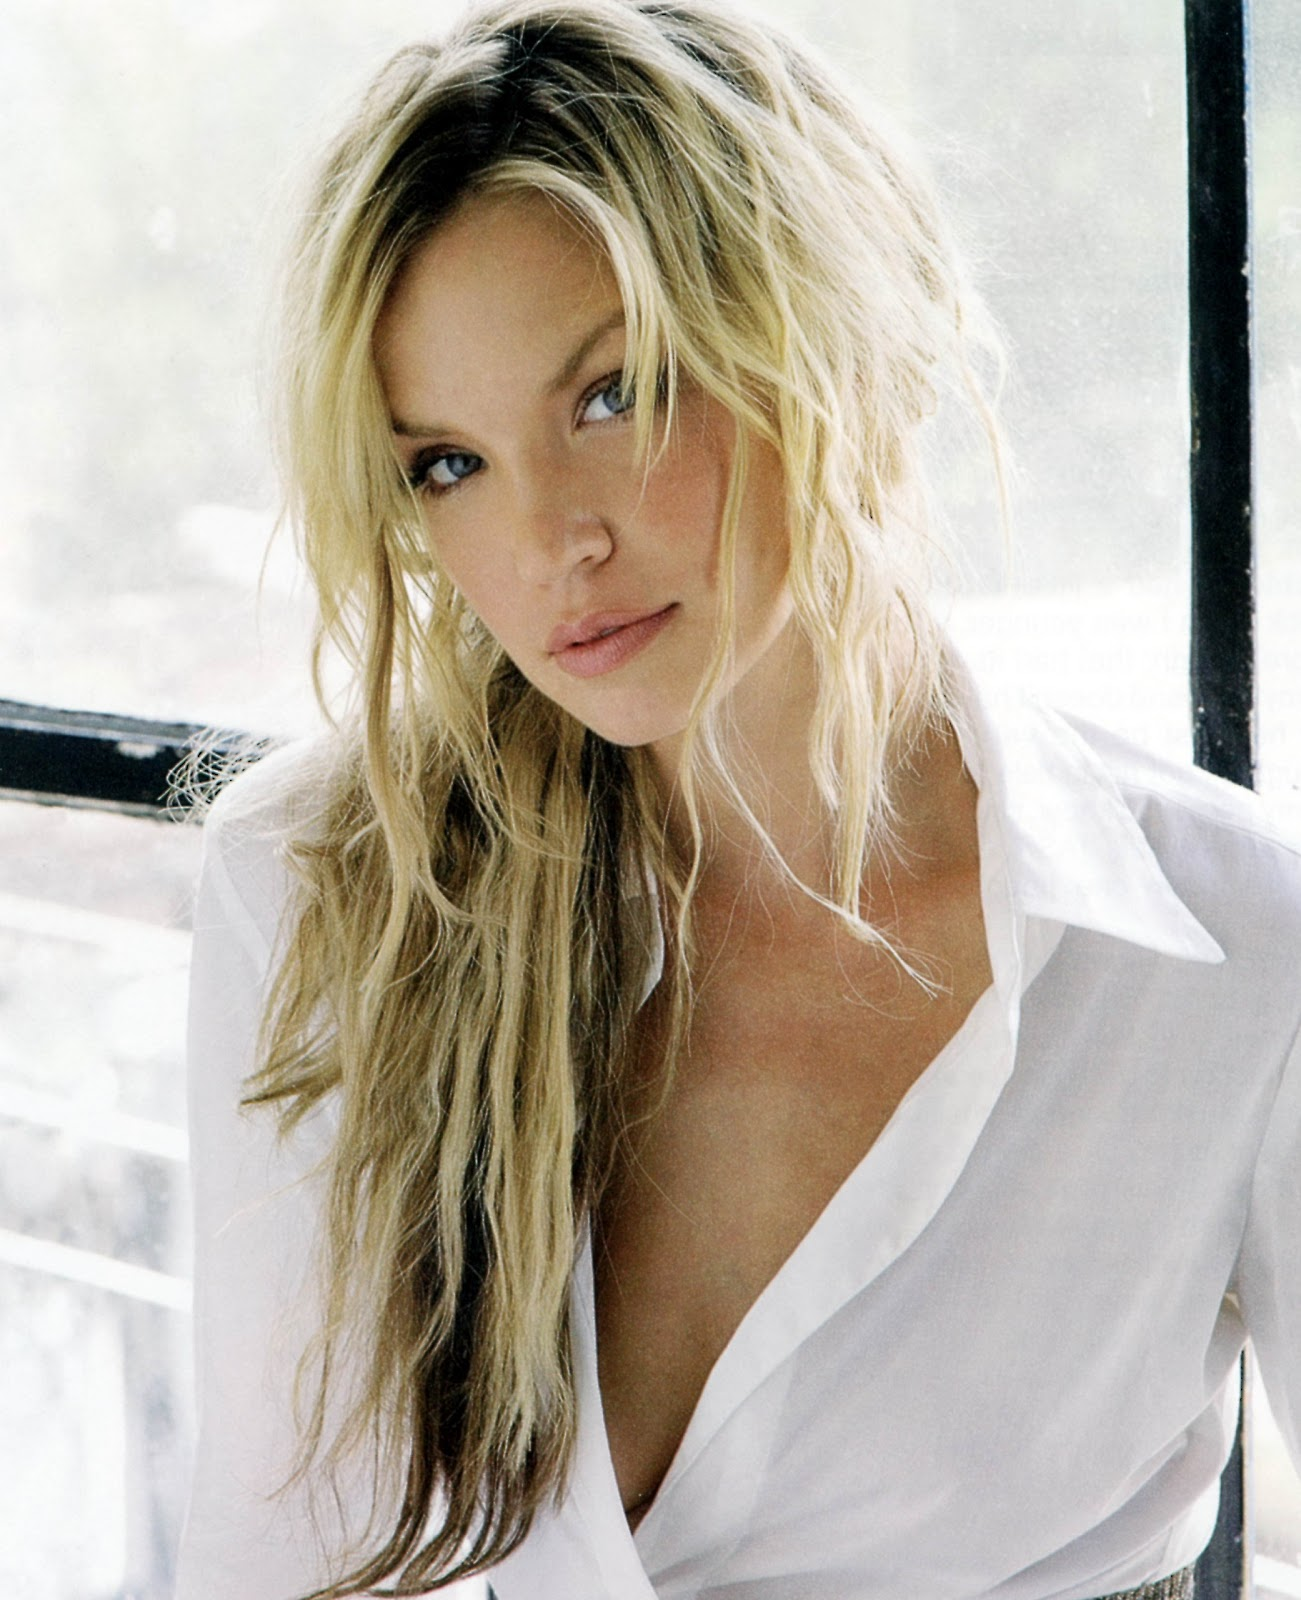 Ashley scott nue